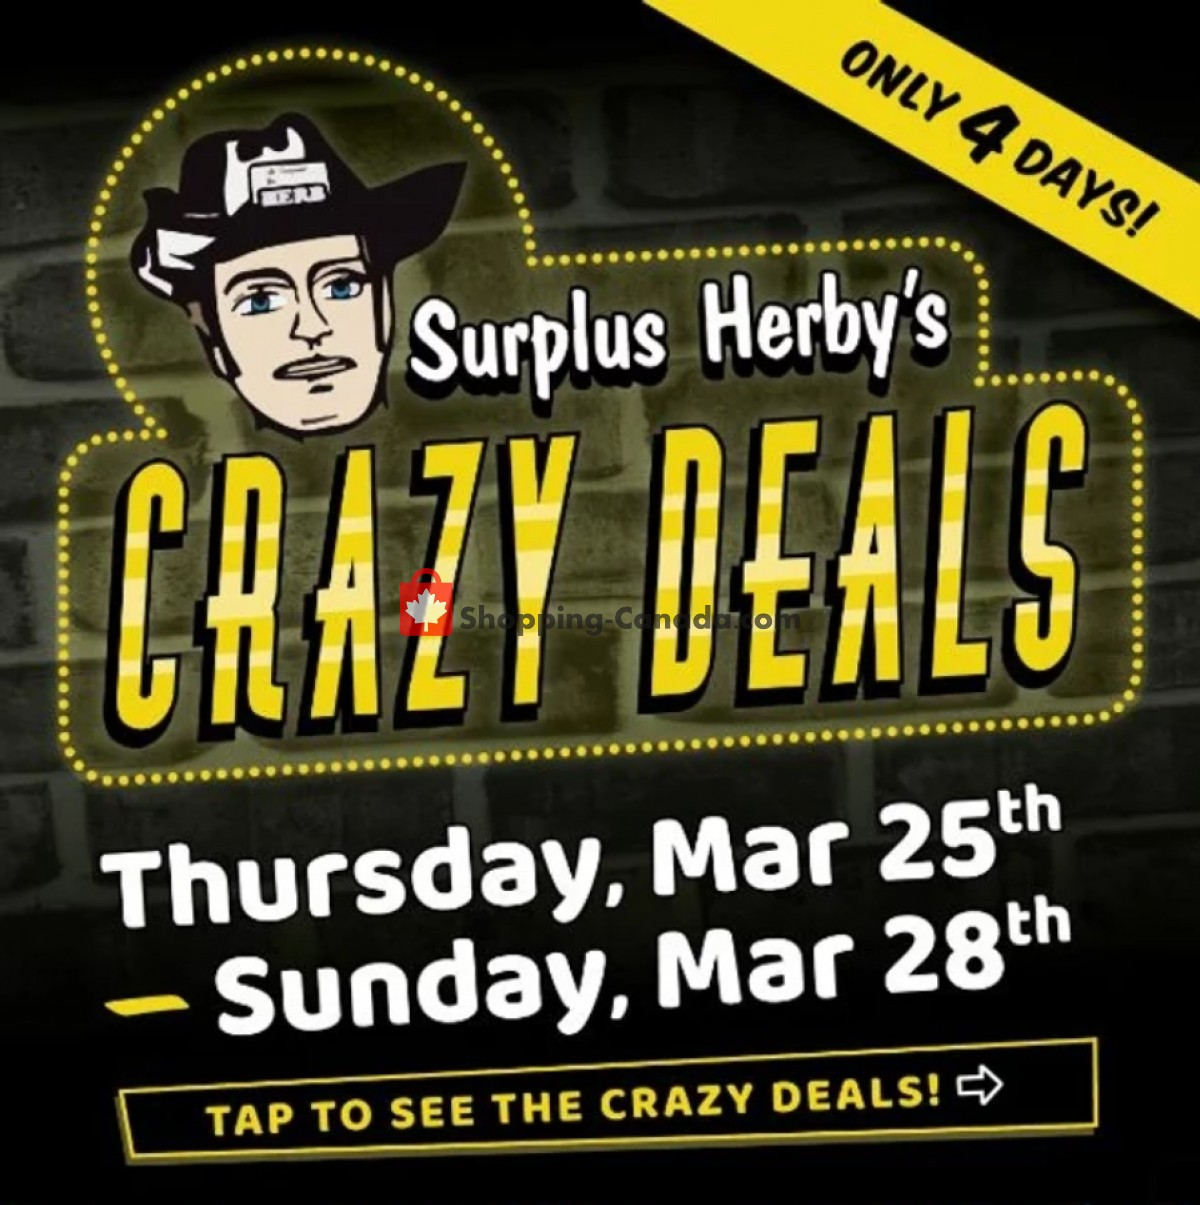 Flyer Surplus Herby's Canada - from Thursday March 25, 2021 to Sunday March 28, 2021